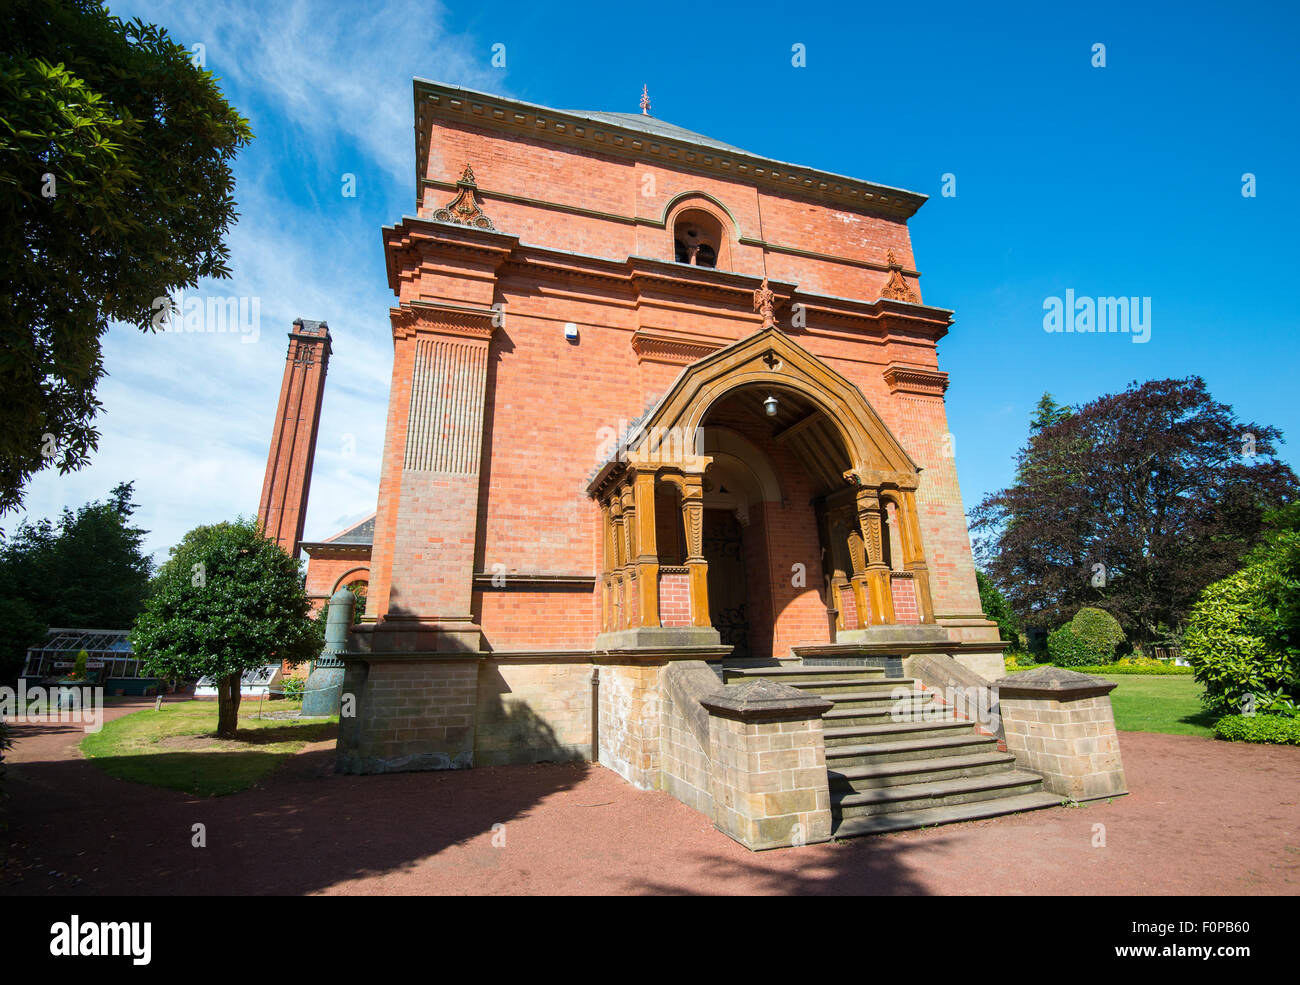 The Engine House at Papplewick Pumping Station, Nottinghamshire England UK - Stock Image